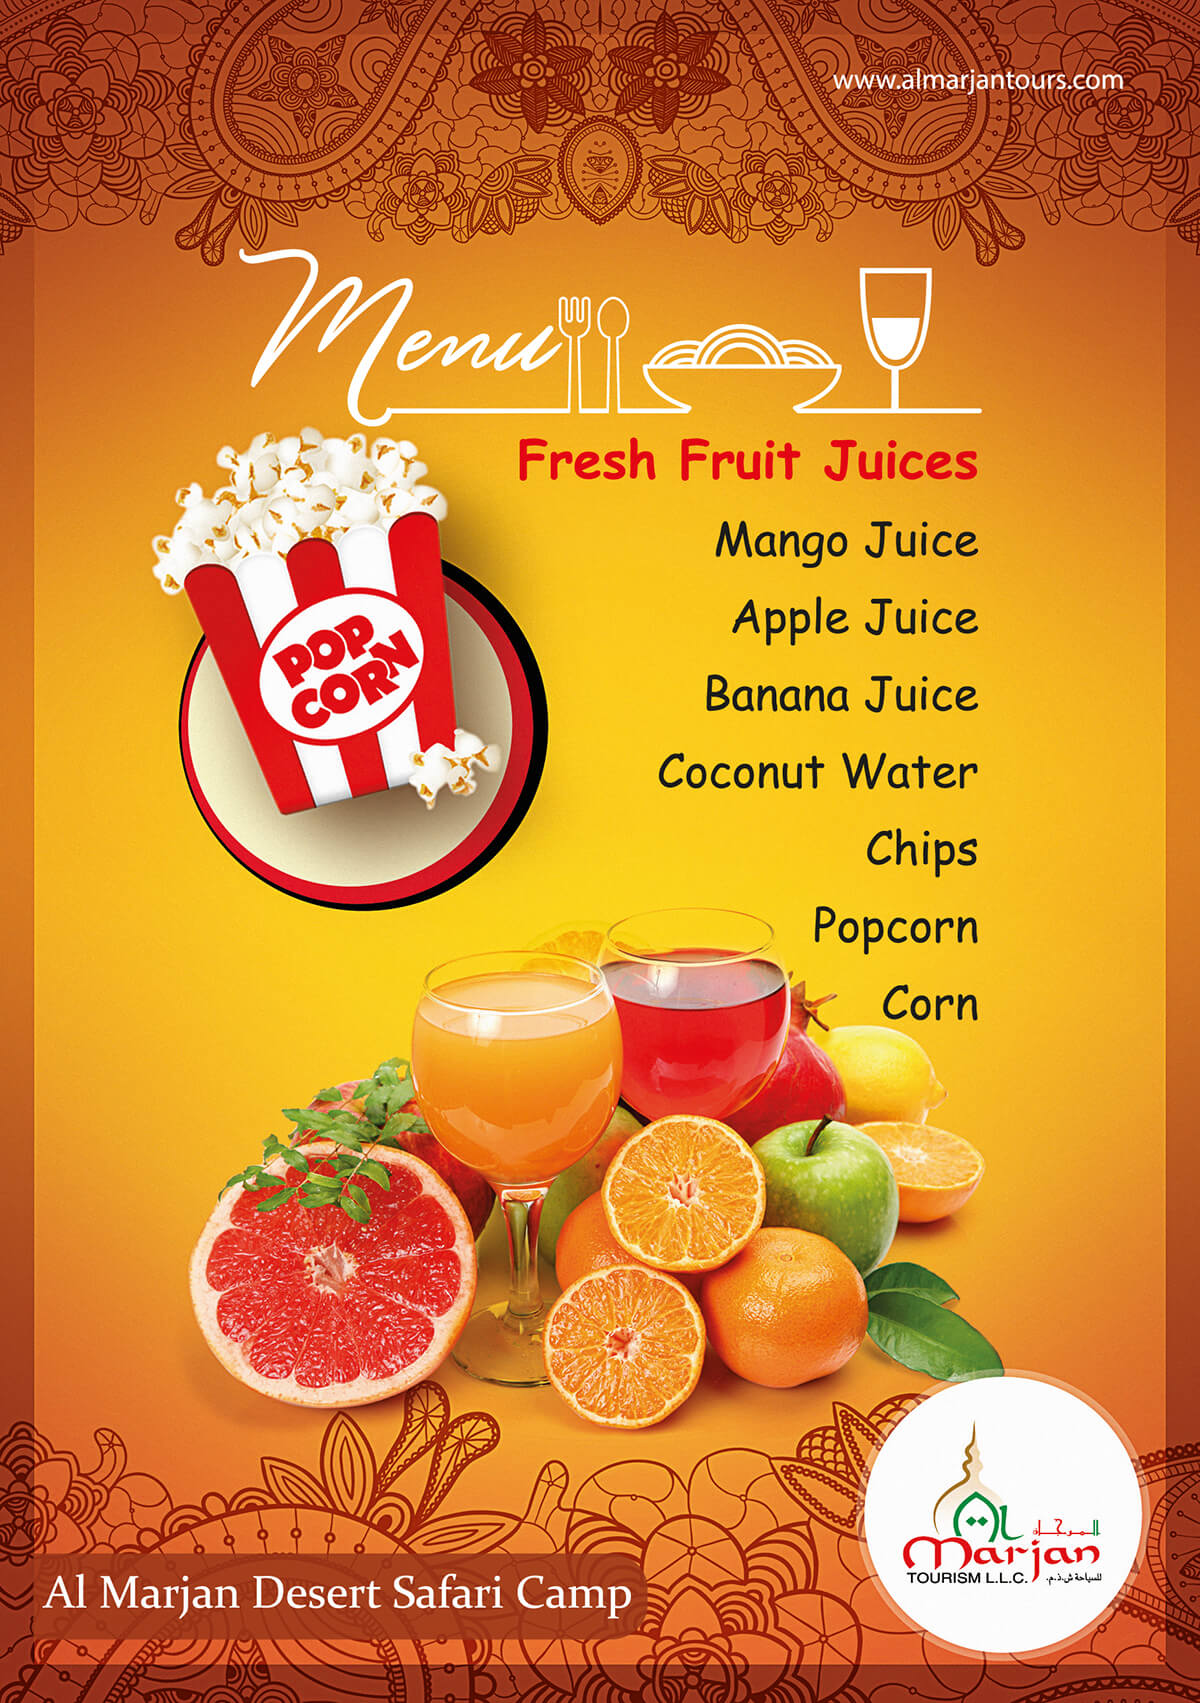 Fresh Fruit Juices Menu Card Design PSD